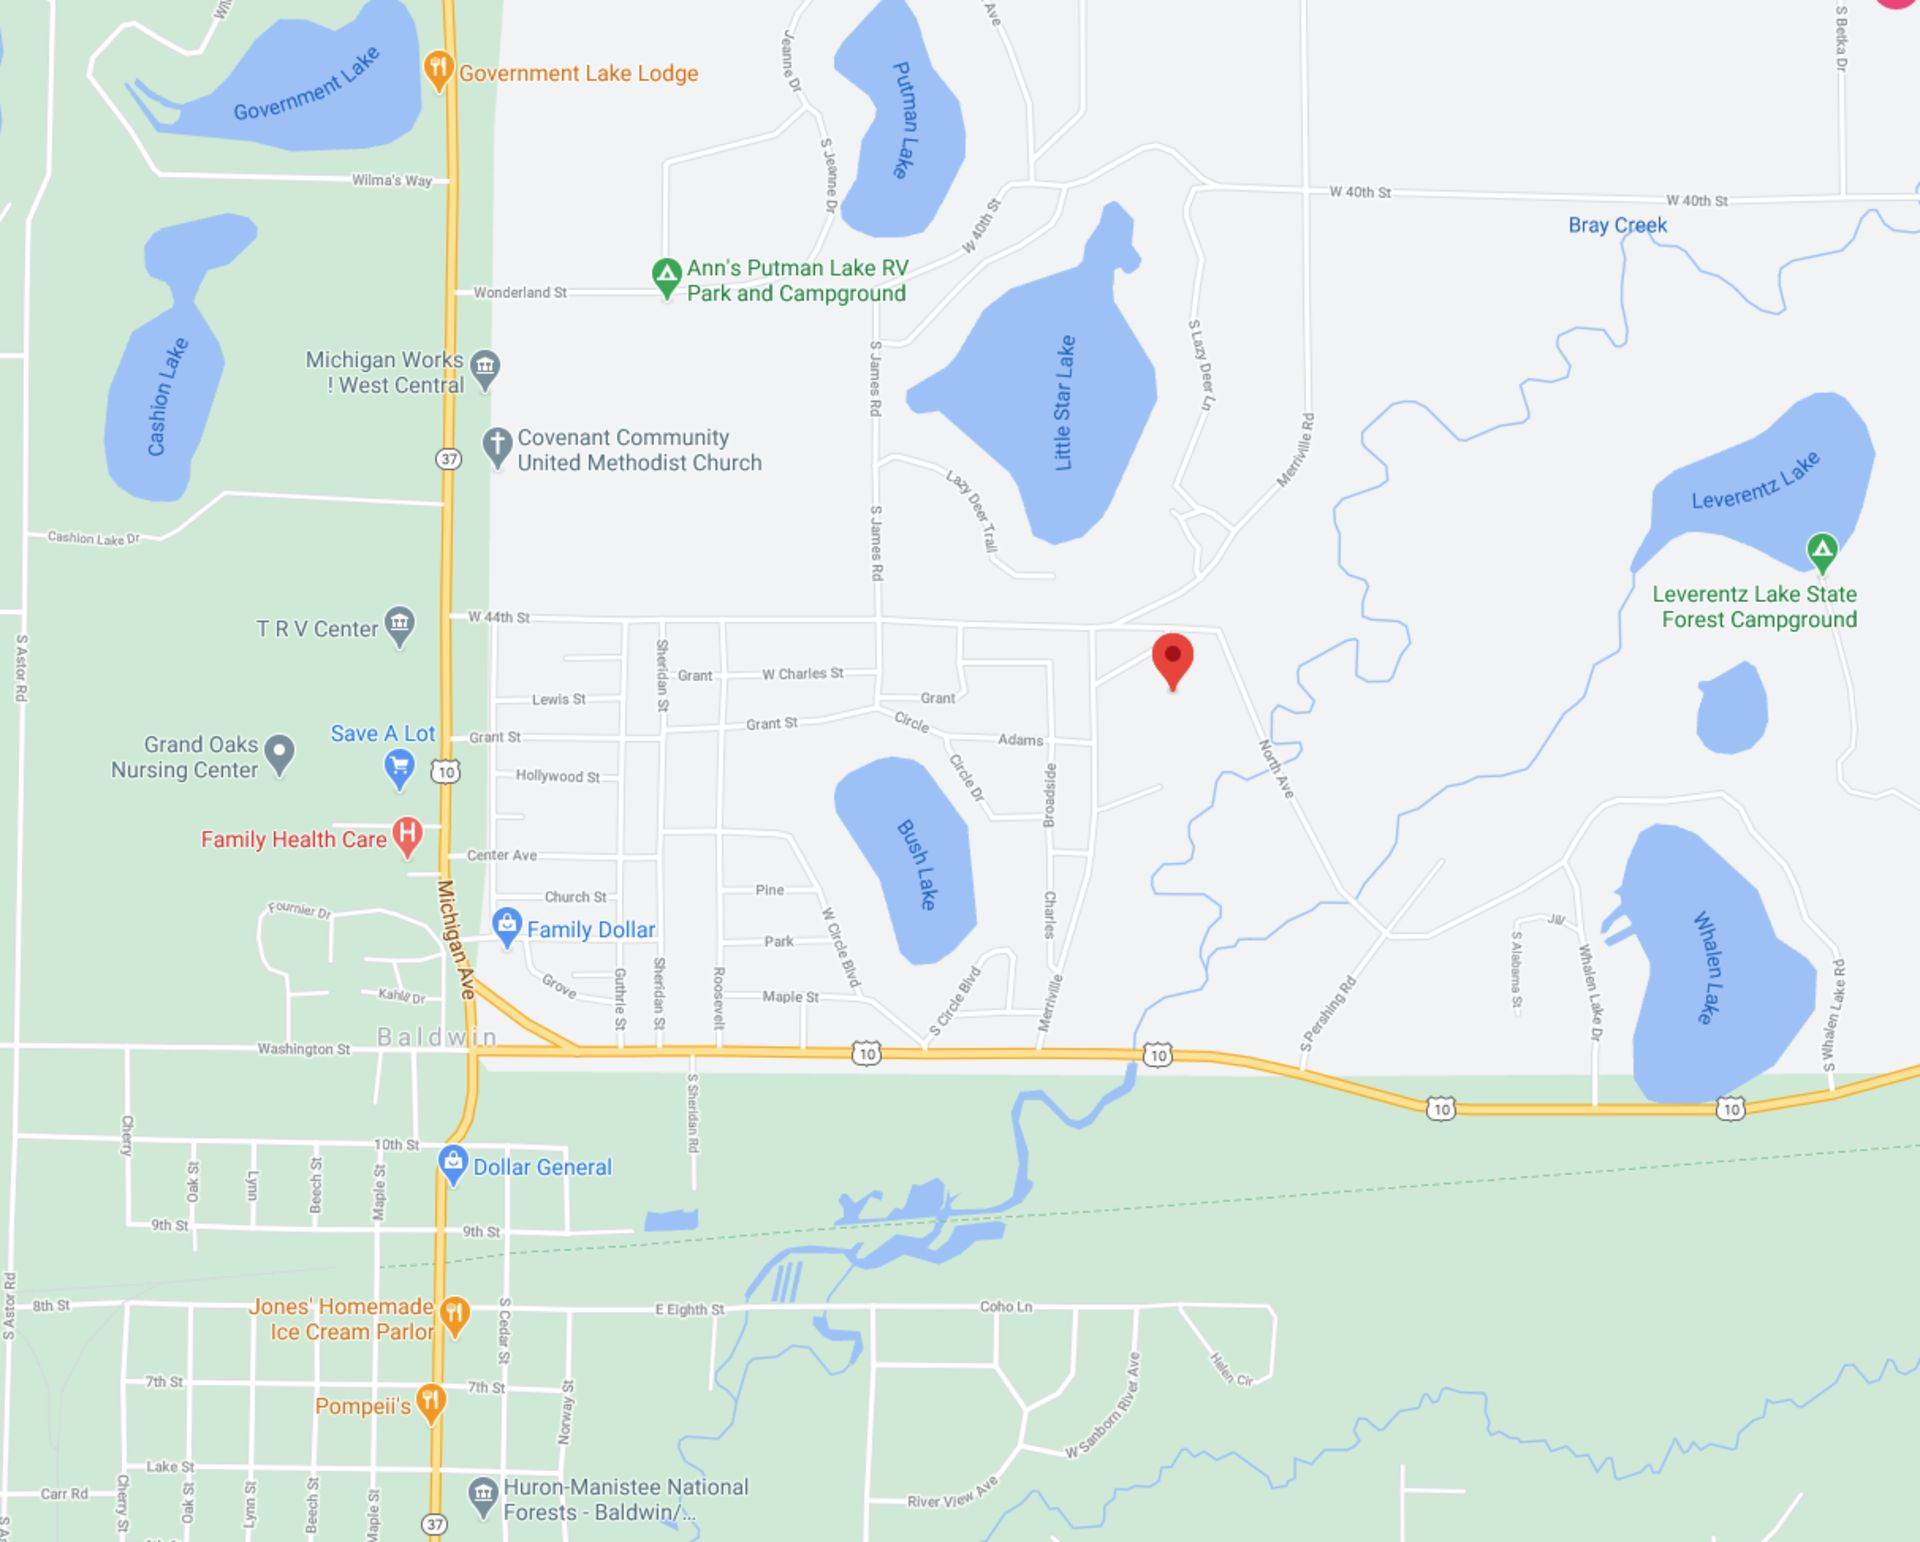 Own Land in Lake County. Michigan's Recreational Outdoor Paradise! - Image 2 of 6